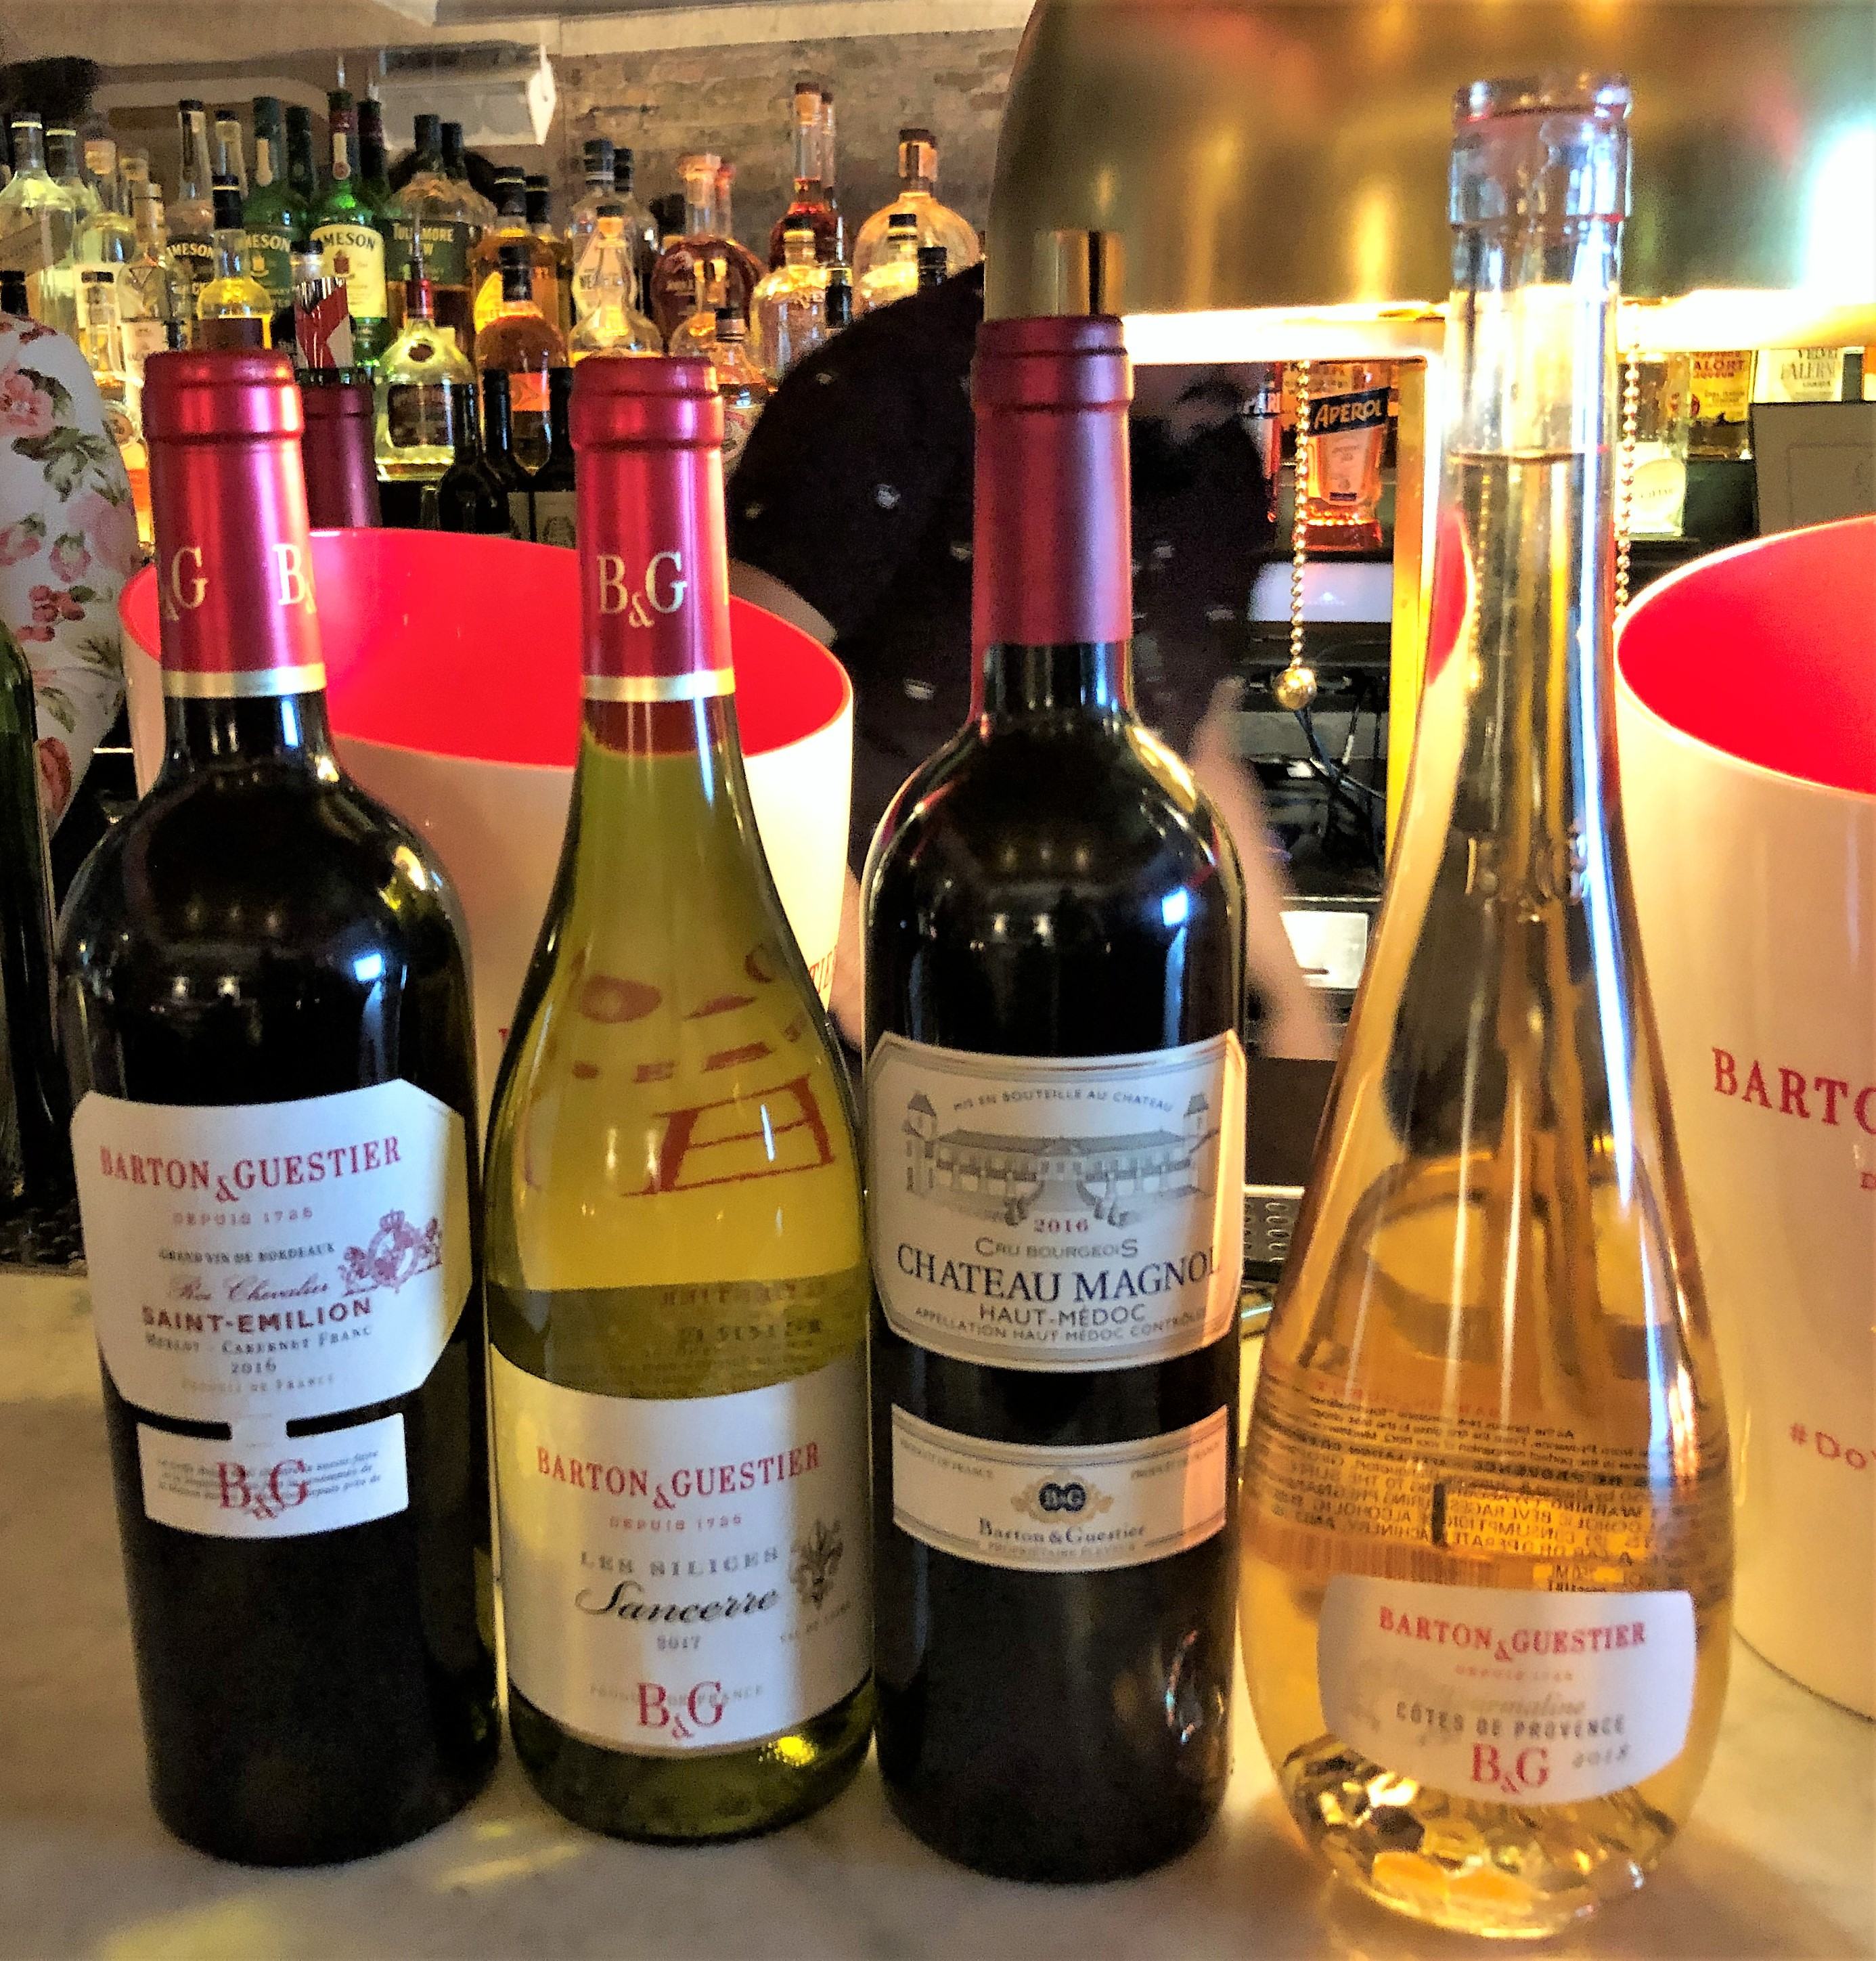 Four bottles of wine on a counter: red, white, red, white.